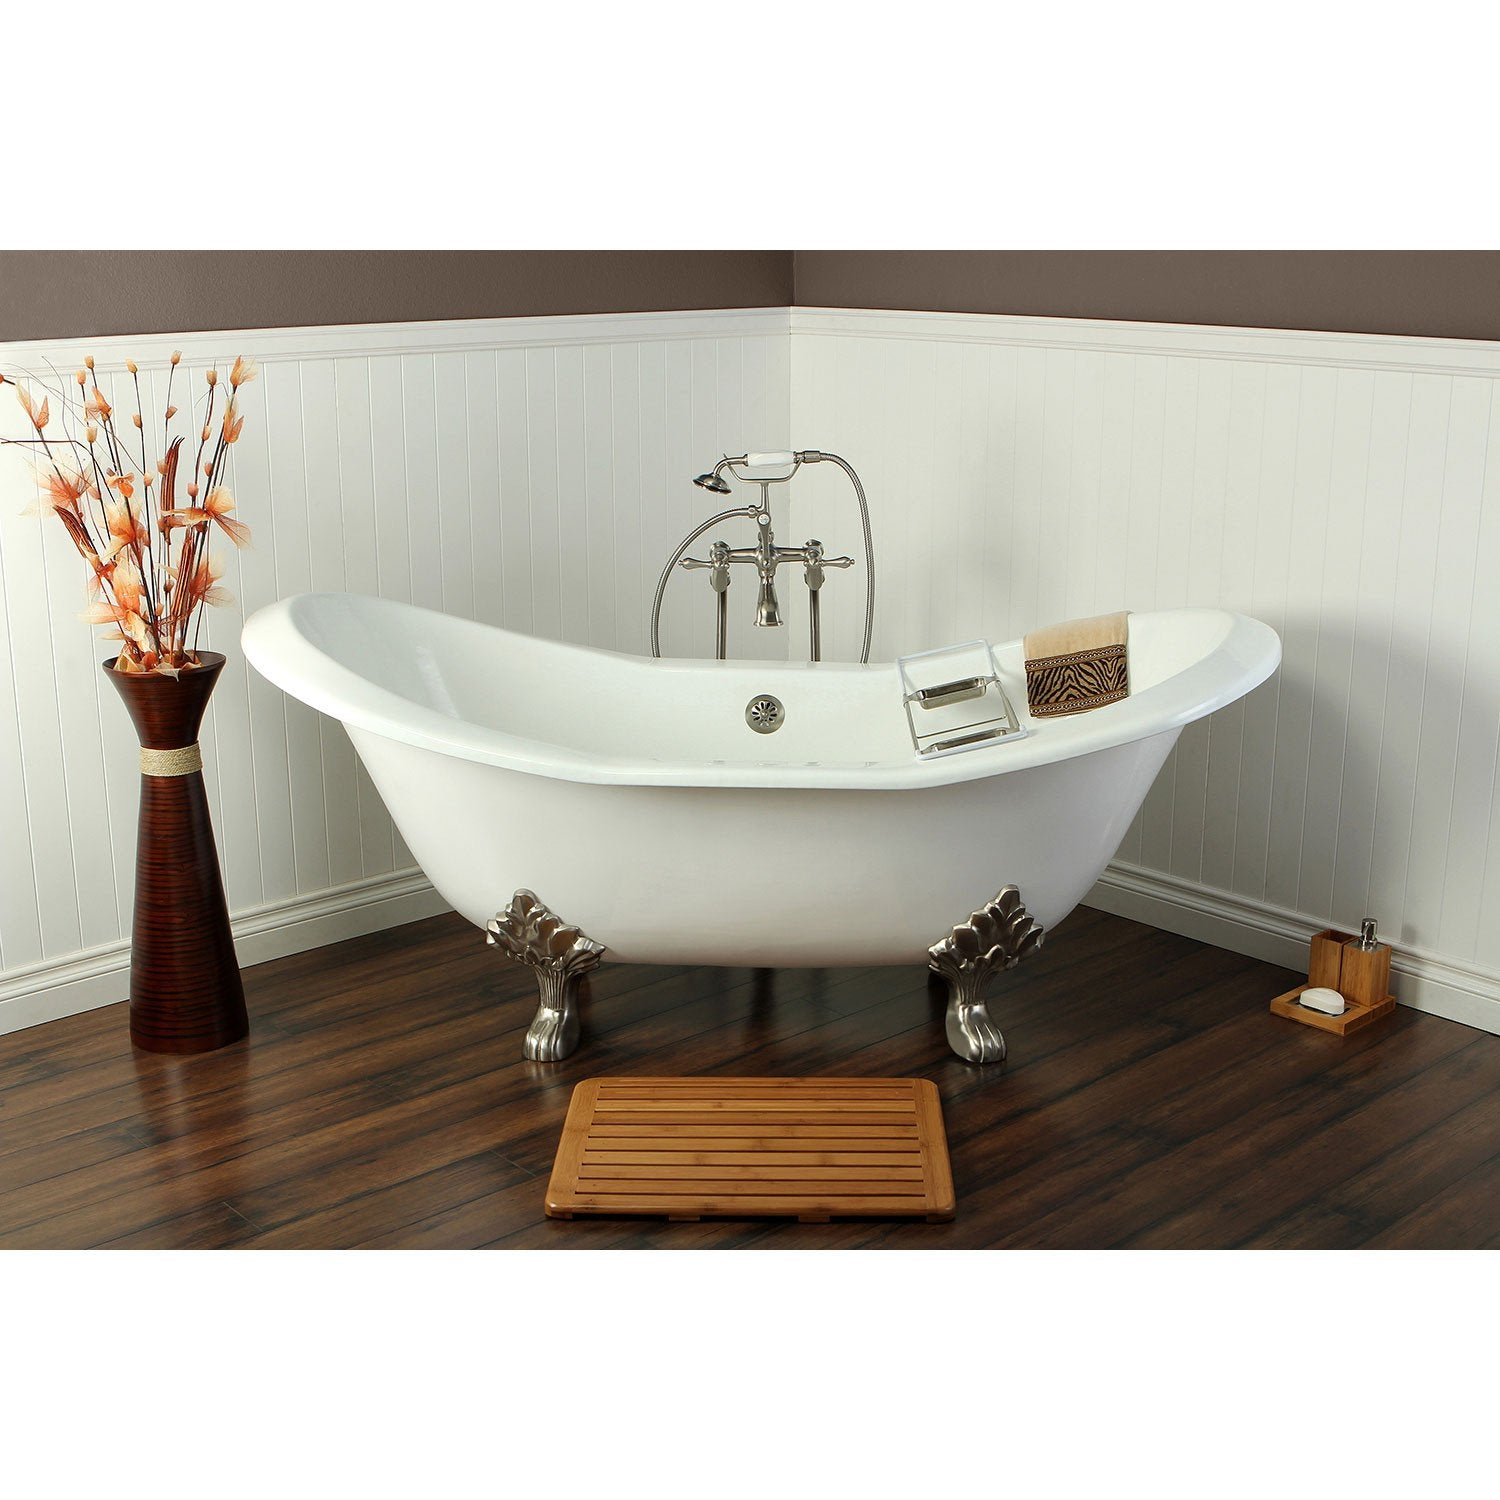 "72"" Clawfoot Tub w Freestanding Satin Nickel Tub Faucet & Hardware Package CTP36"